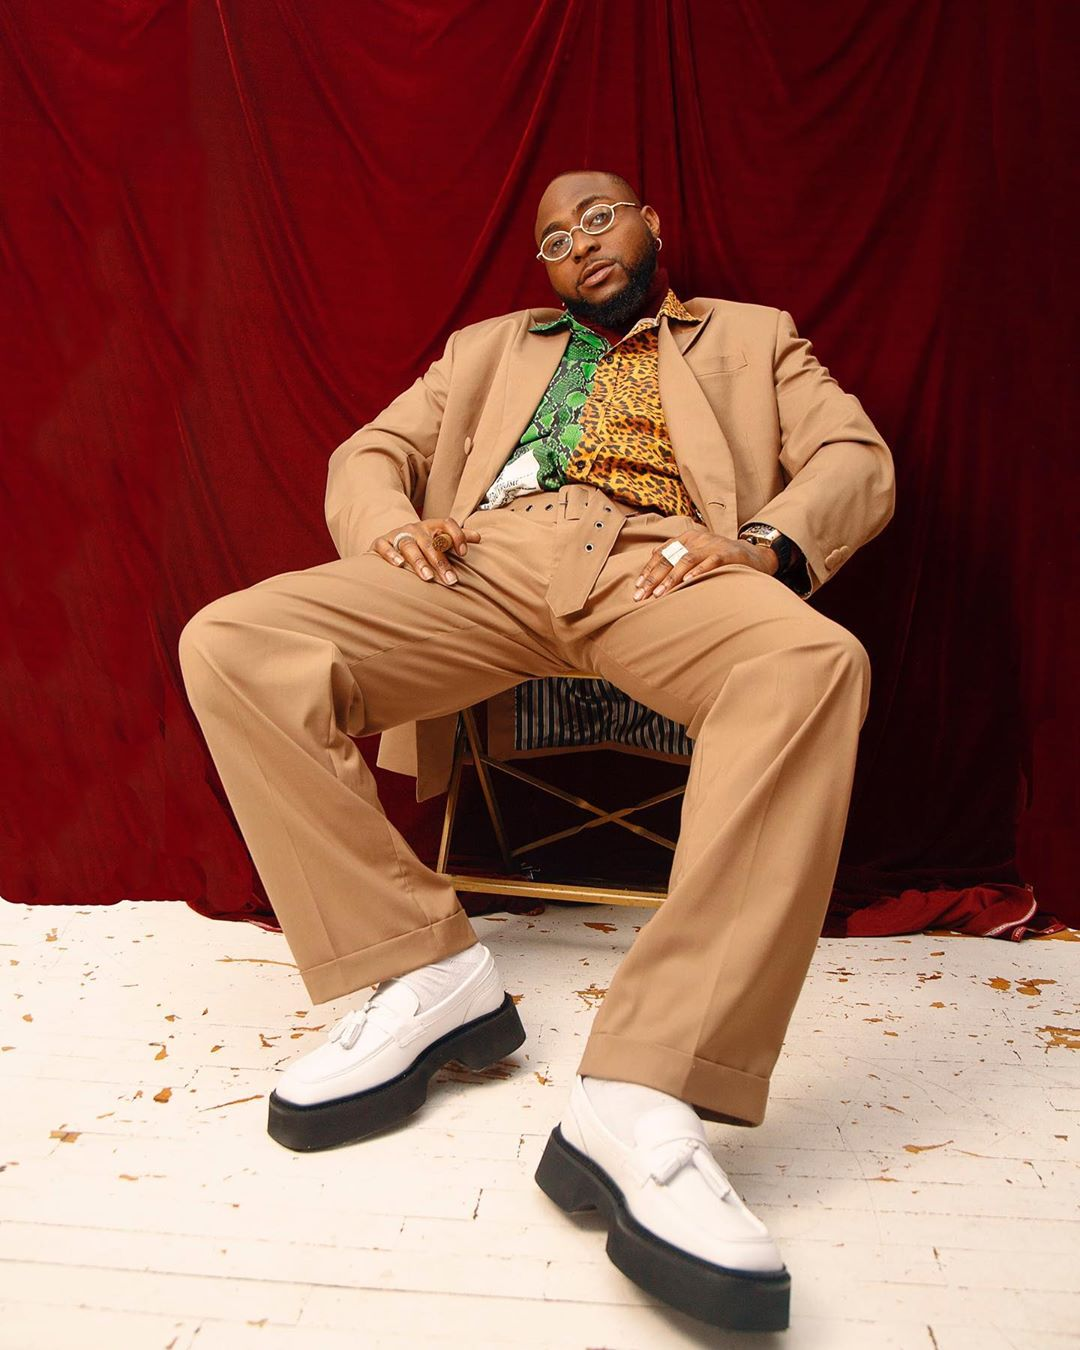 Watch: All The Must-See BTS Moments From Davido's GQ South Africa Shoot